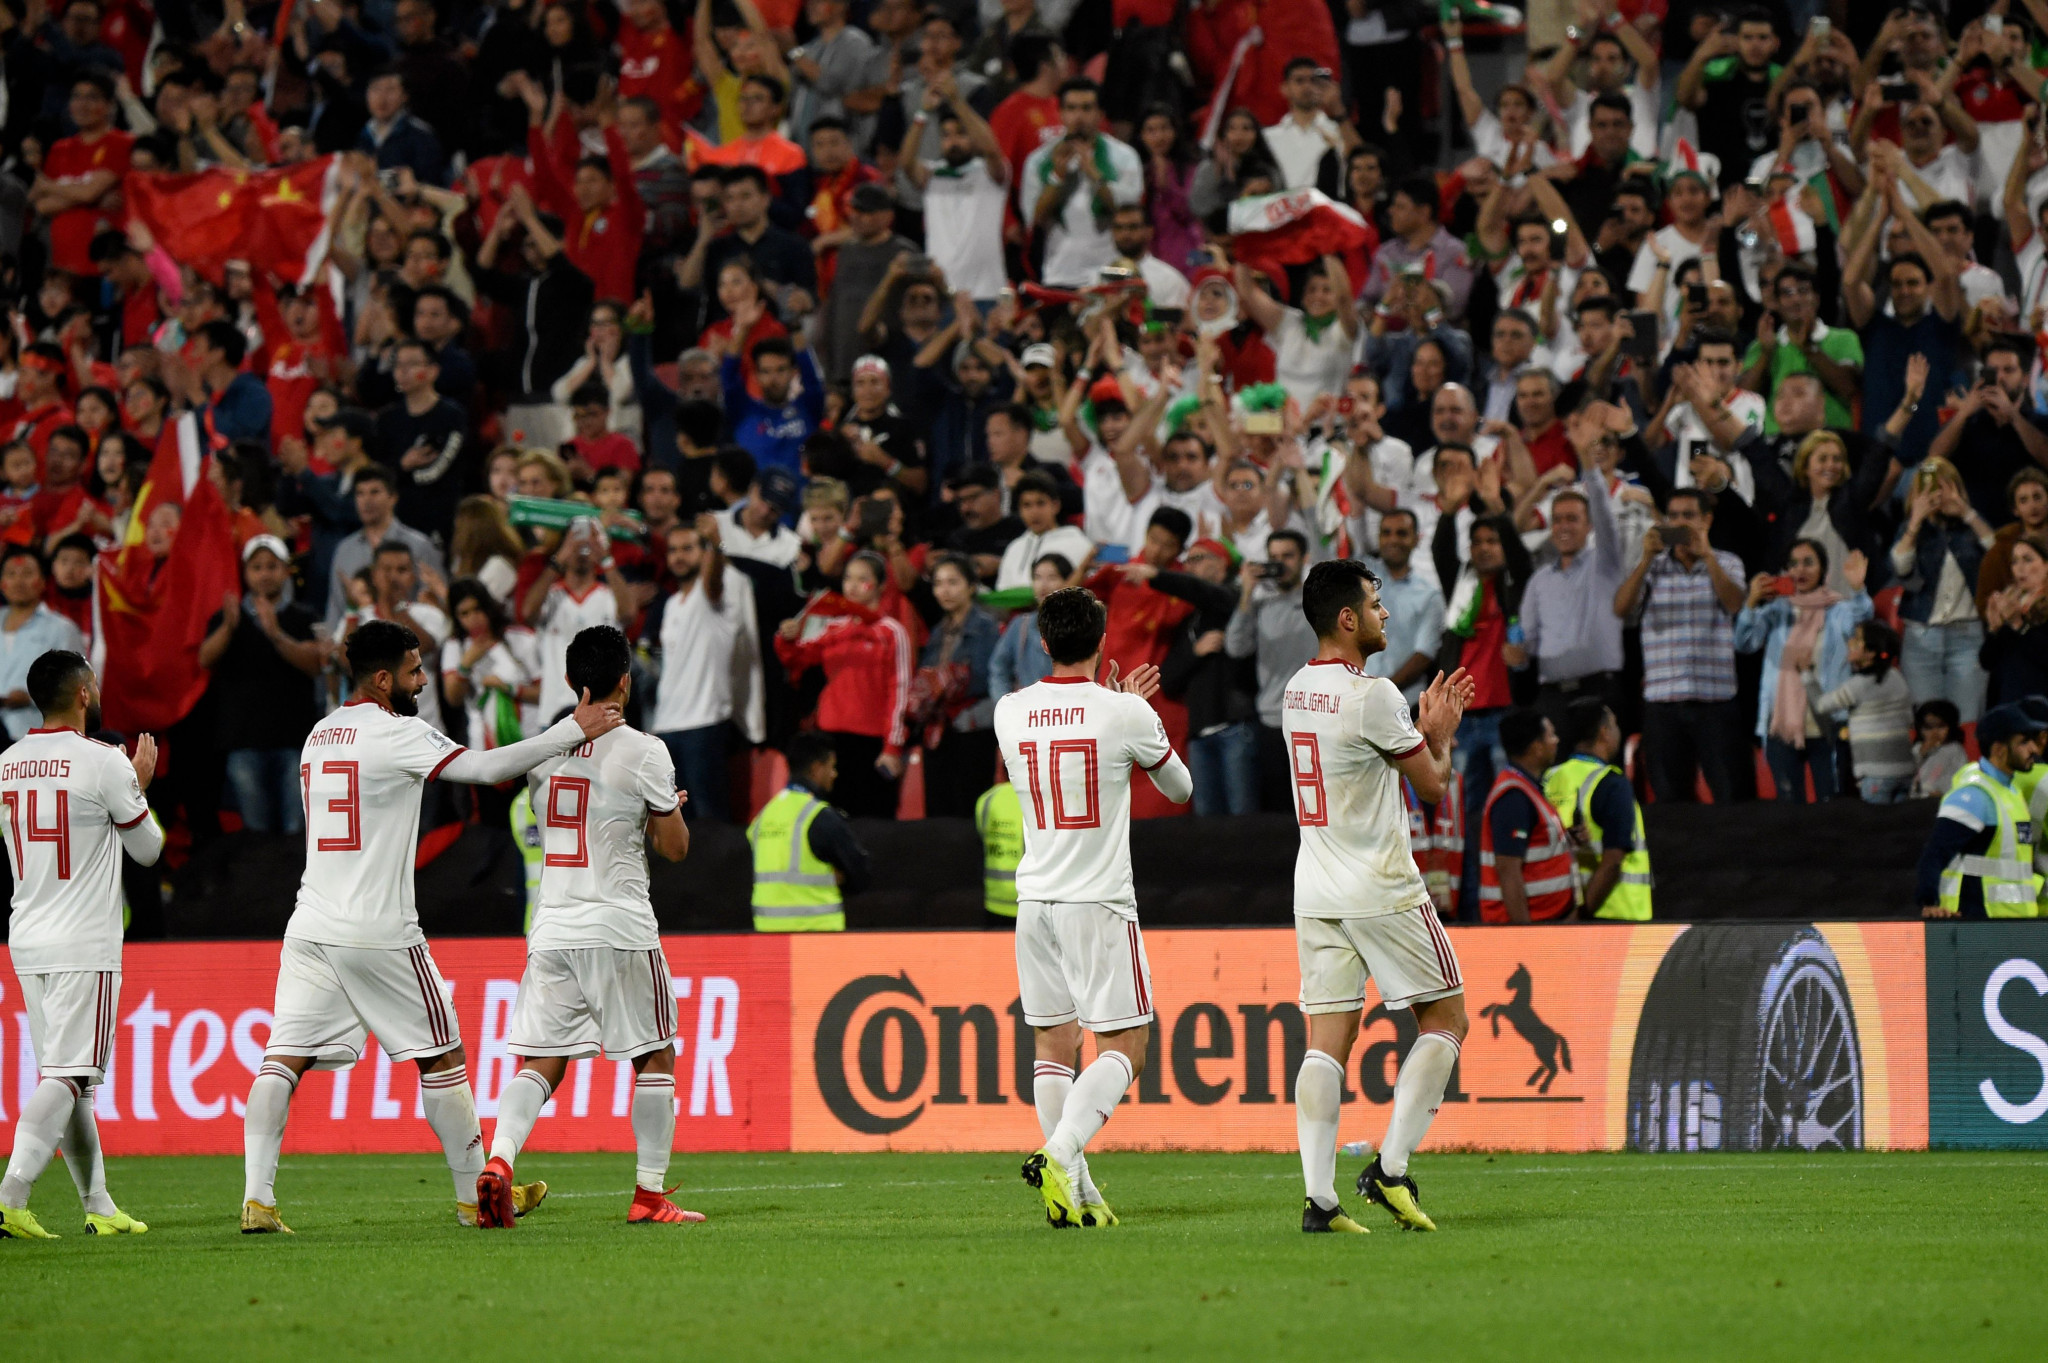 Iran kept themselves on course for a first AFC Asian Cup title since 1976 by beating China 3-0 in the quarter-finals today ©Getty Images